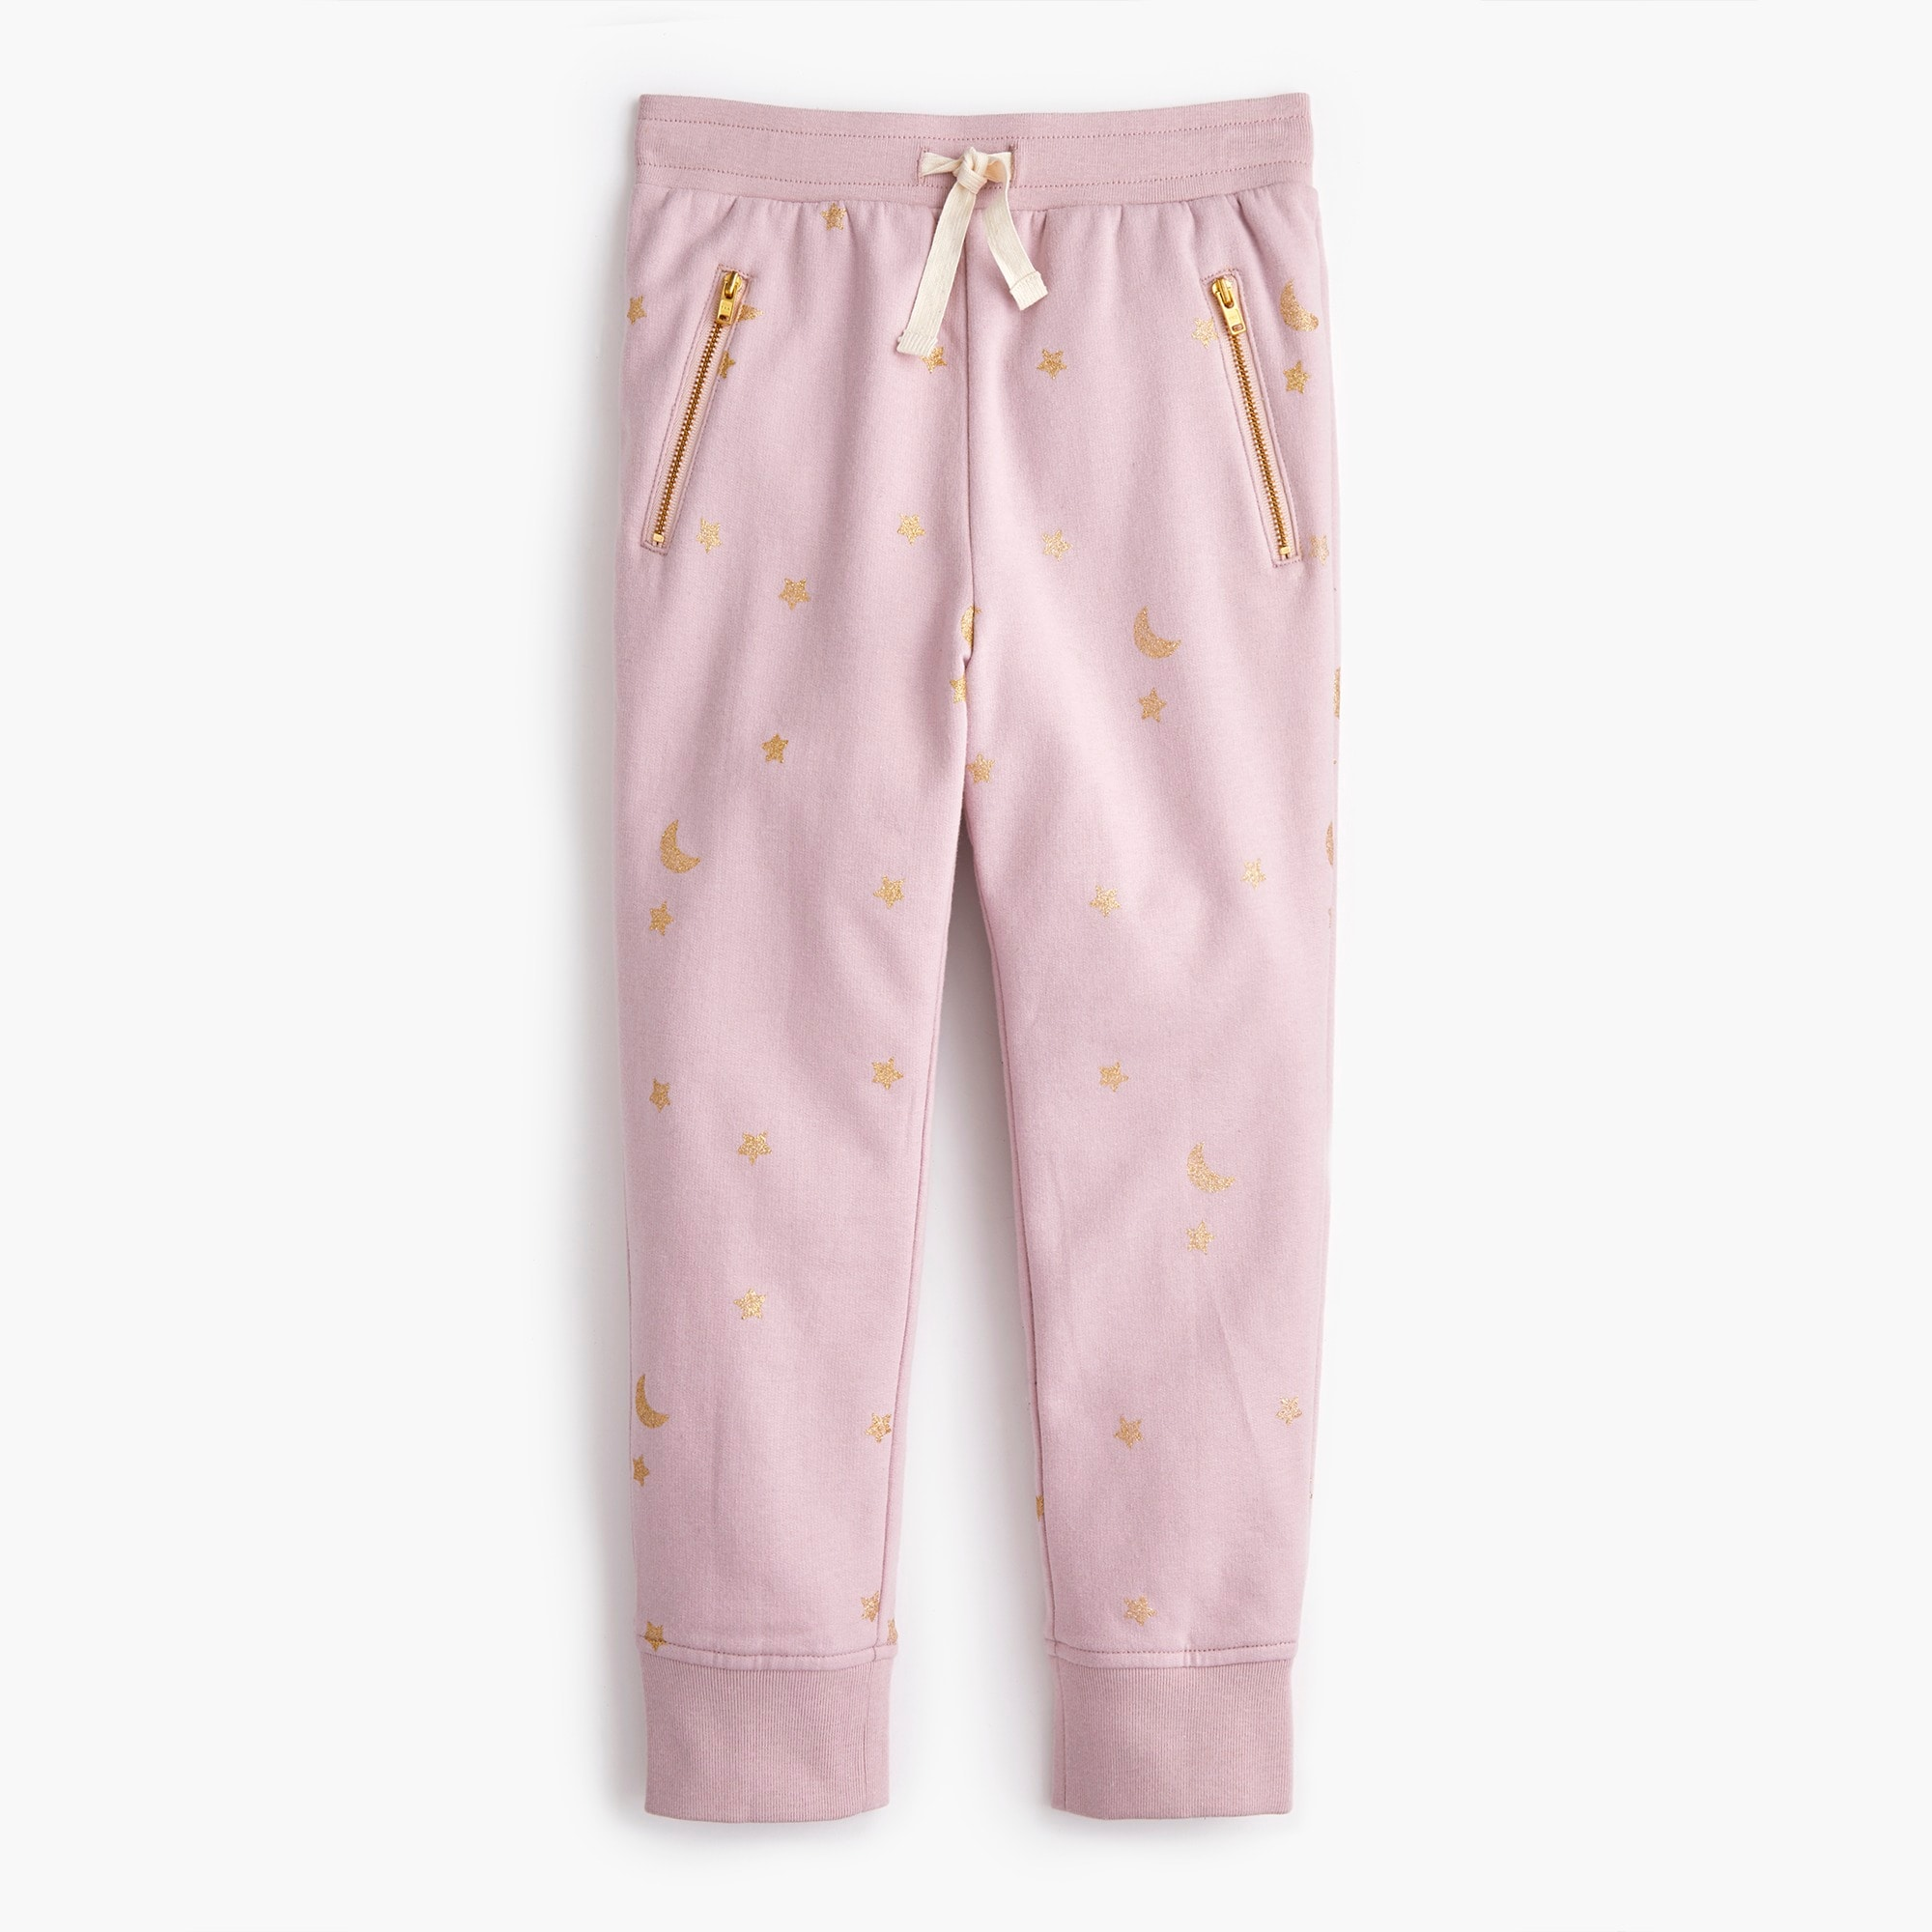 girls Girls' star-print sweatpants